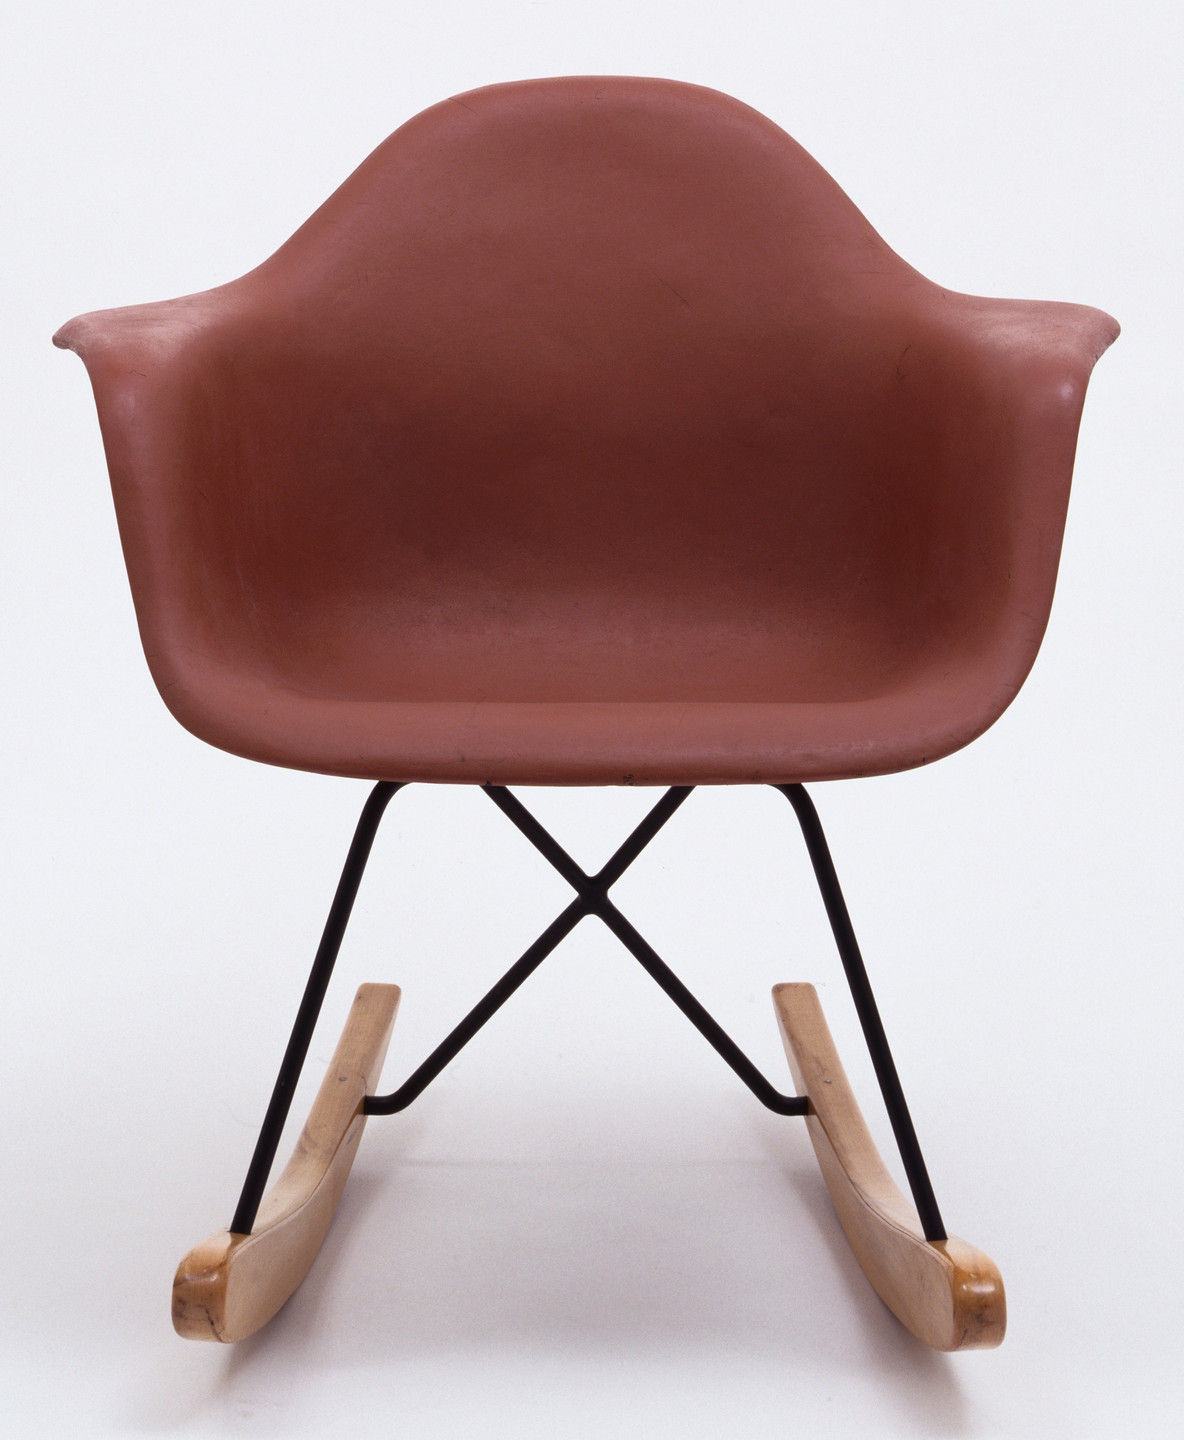 Charles Eames, Ray Eames, University of California Los Angeles Team. Prototype for Rocking Armchair. 1948